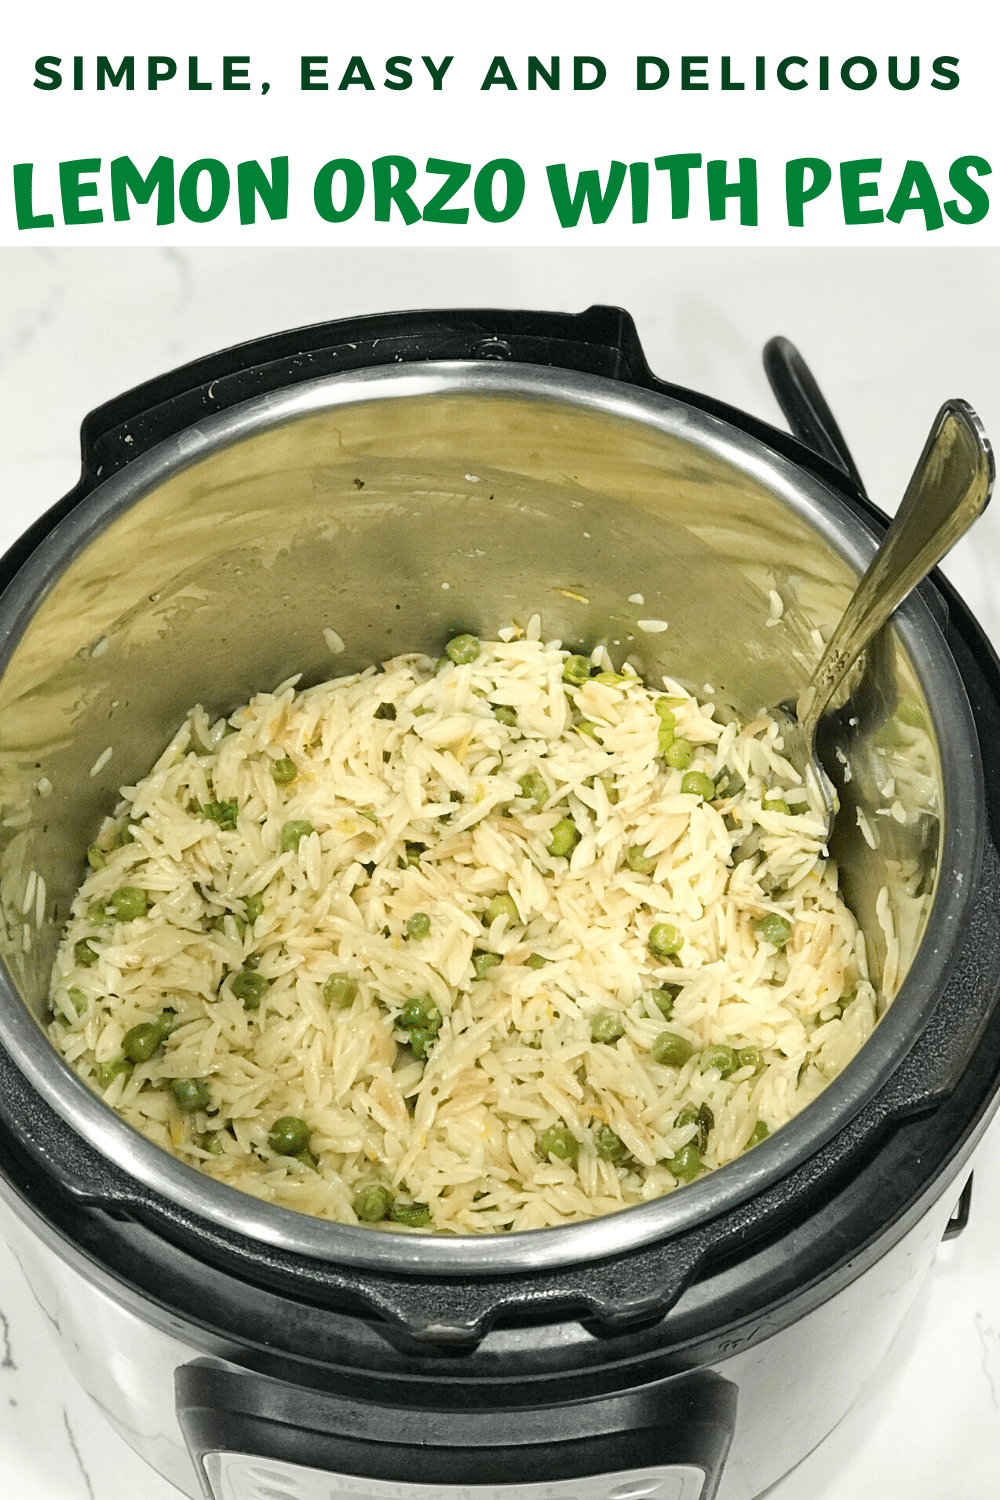 Lemon Orzo With Peas - Instant Pot Orzo